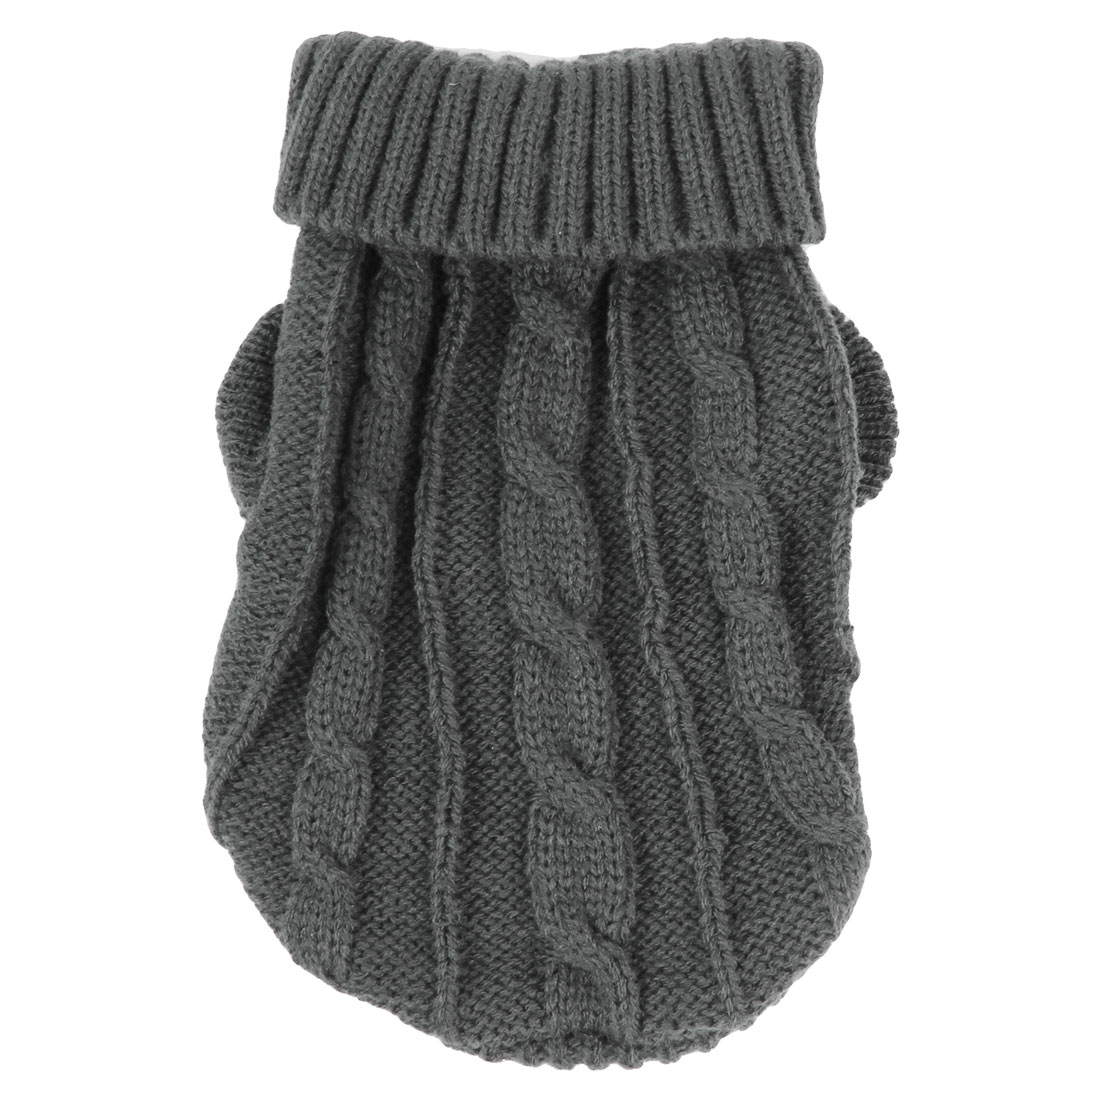 Pet Dog Yorkie Twisted Knit Ribbed Cuff Turtleneck Apparel Sweater Dark Gray Size XXS